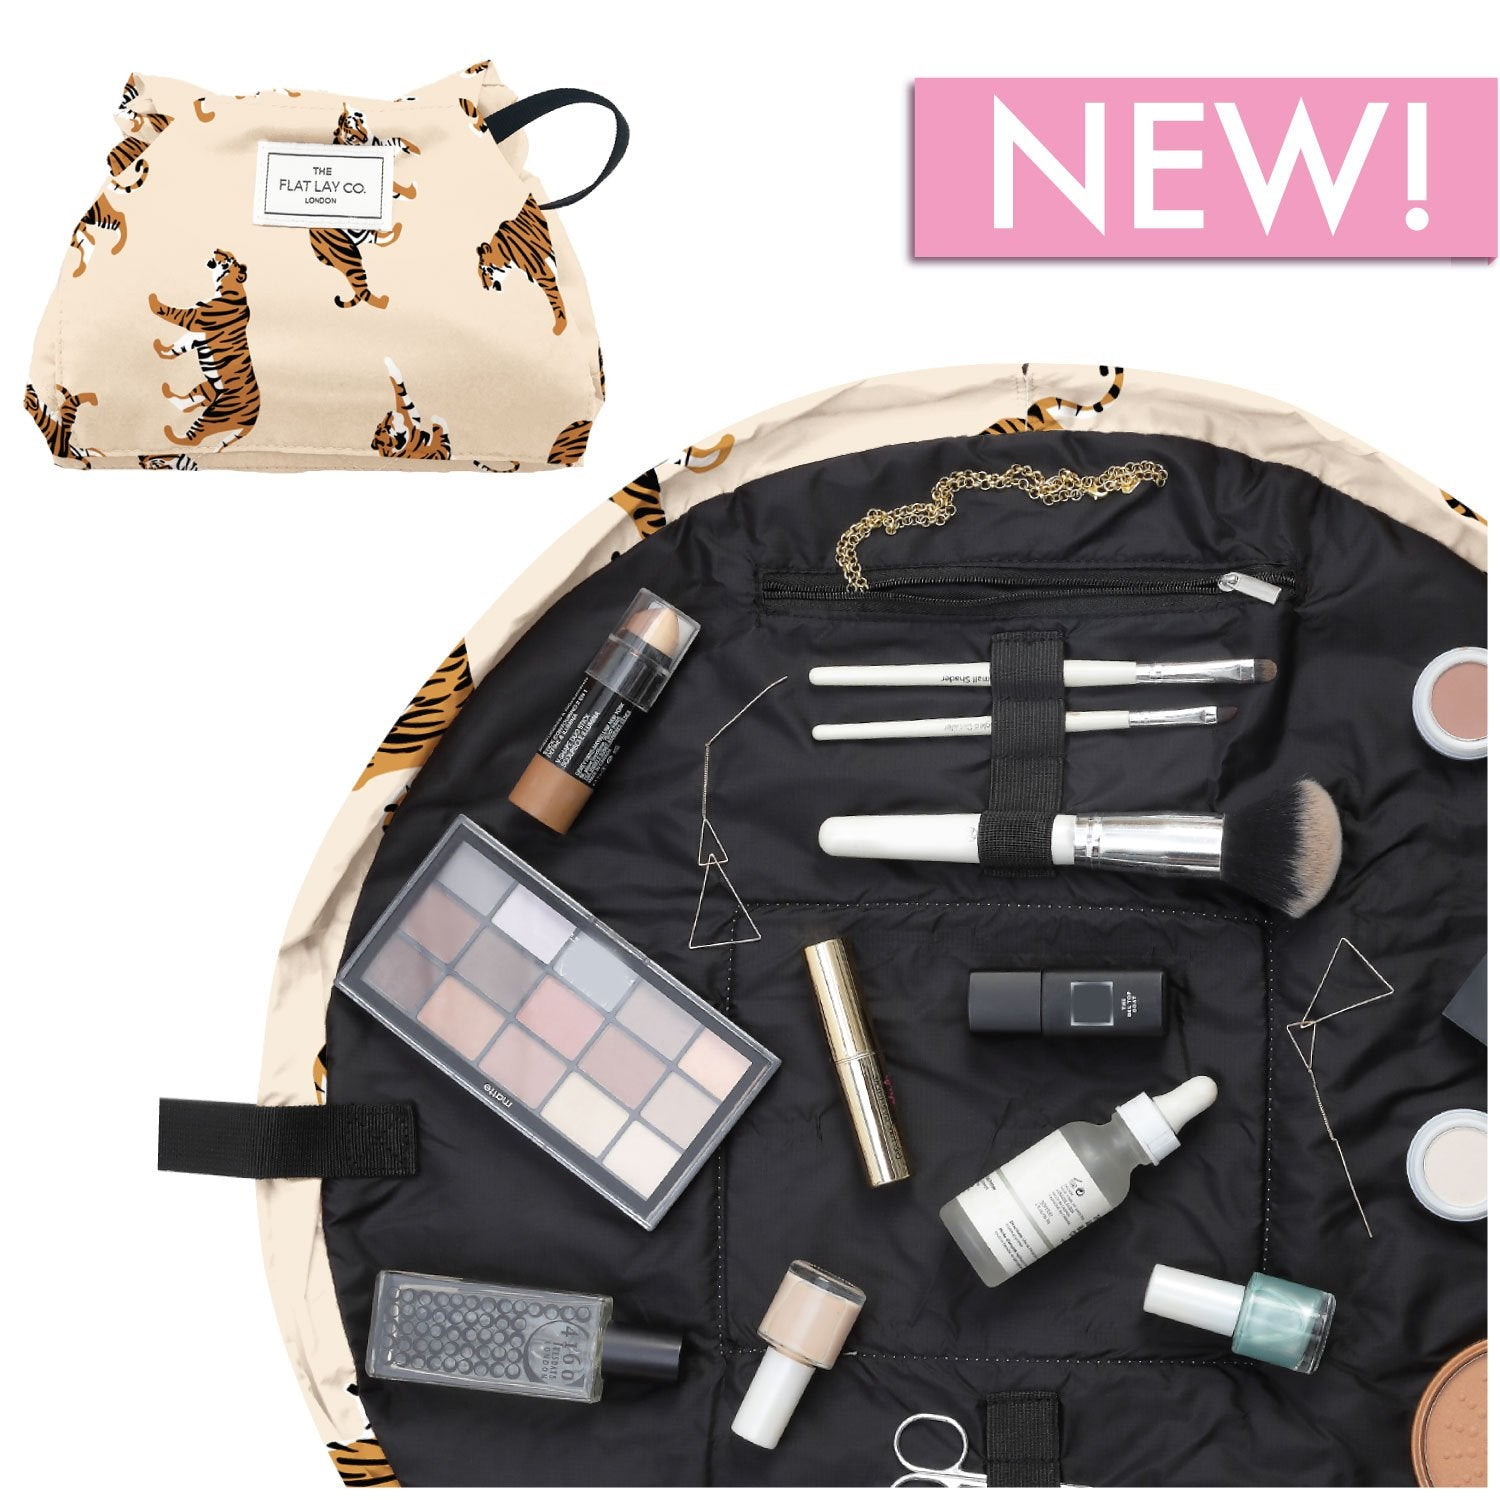 The Flat Lay Co. Neutral Tiger Full Size Flat Lay Makeup Bag